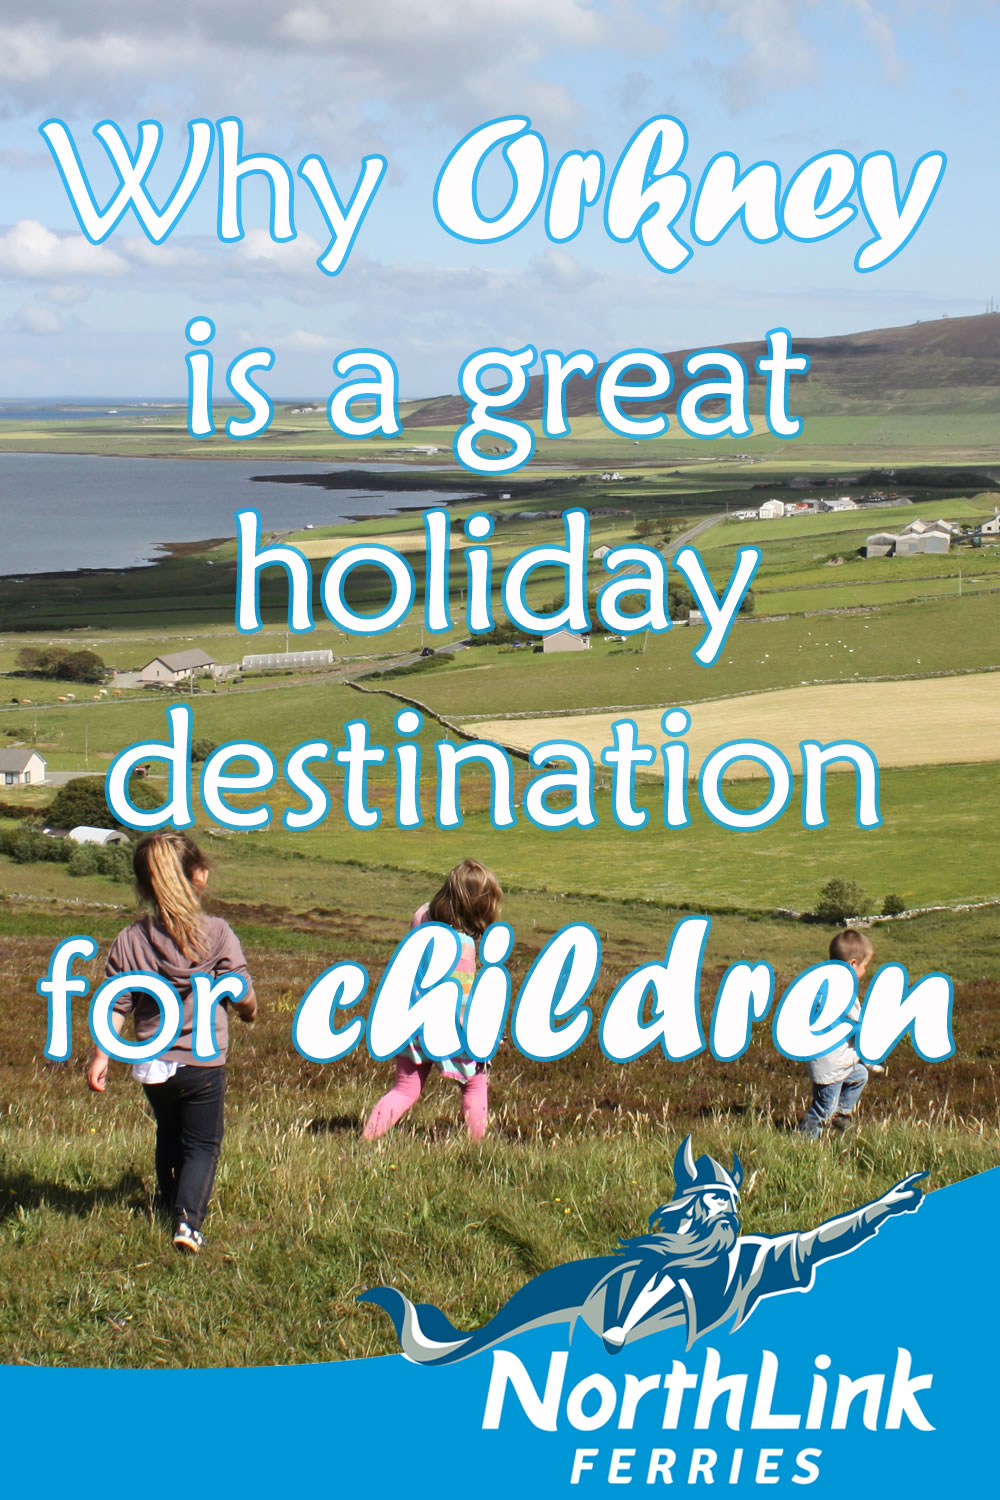 Why Orkney is a great holiday destination for children